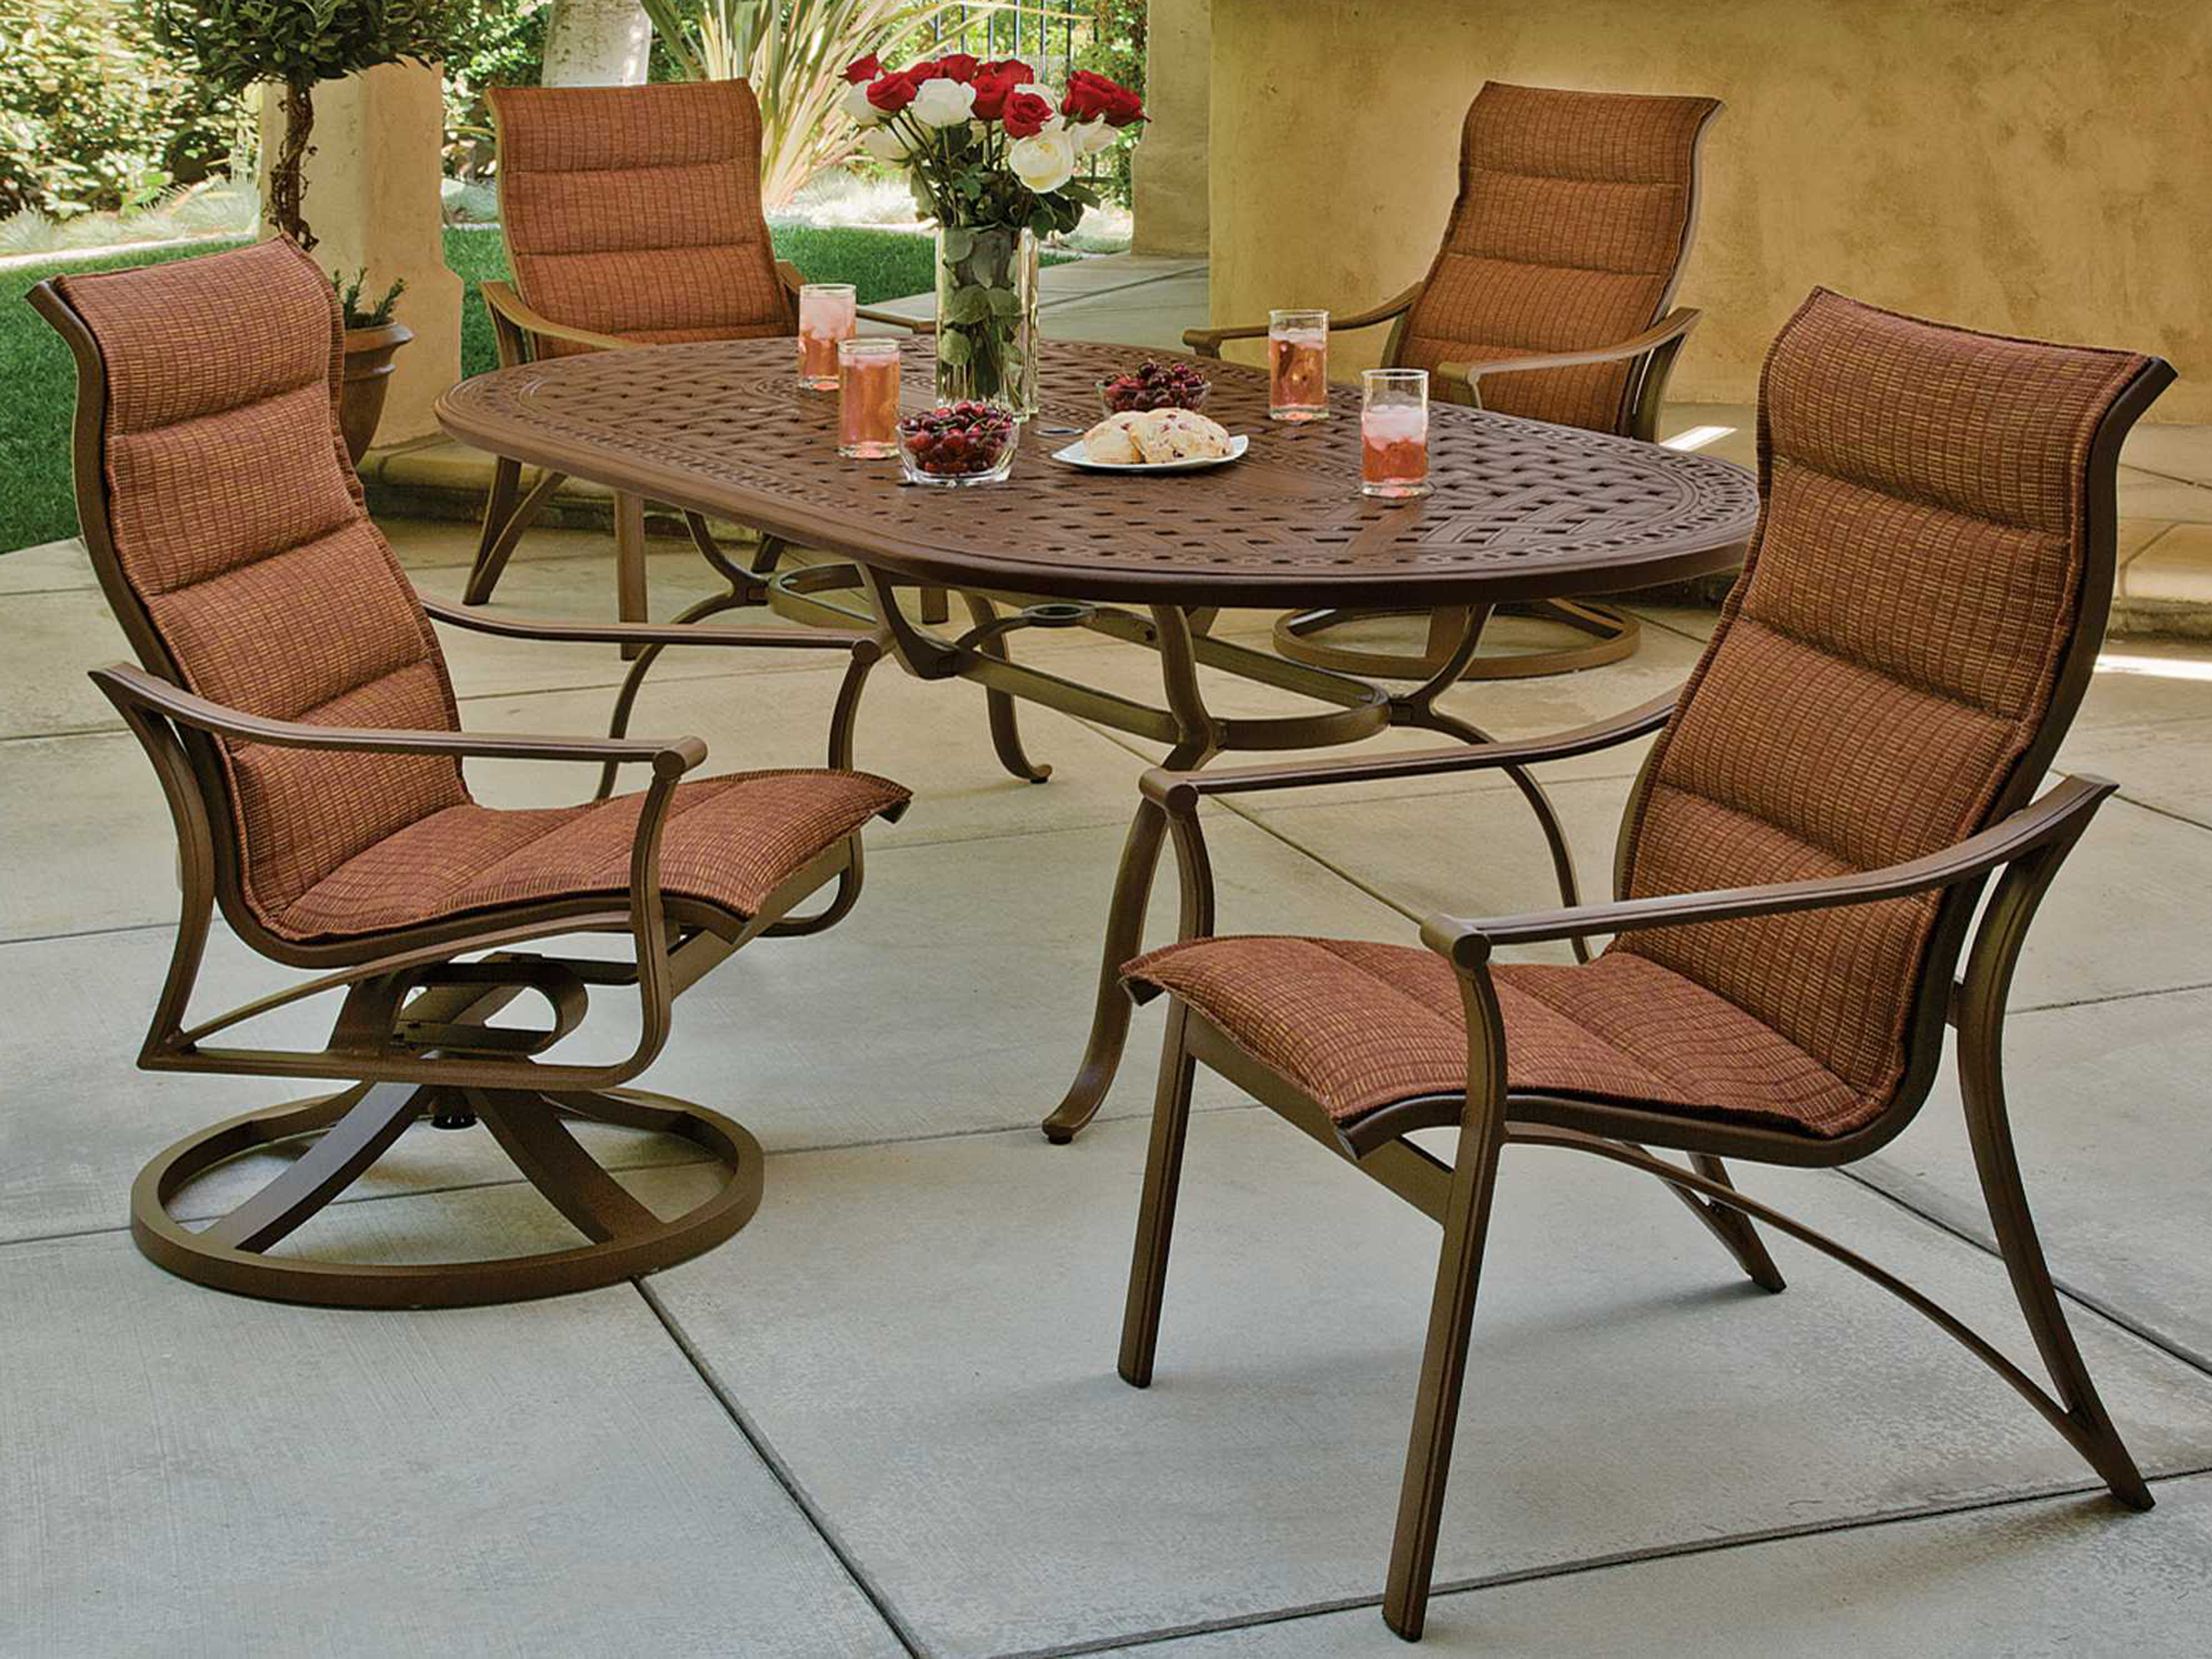 table piece oval reviews co darby dining pdx home with patio set wayfair beadle aluminum outdoor cushions cast